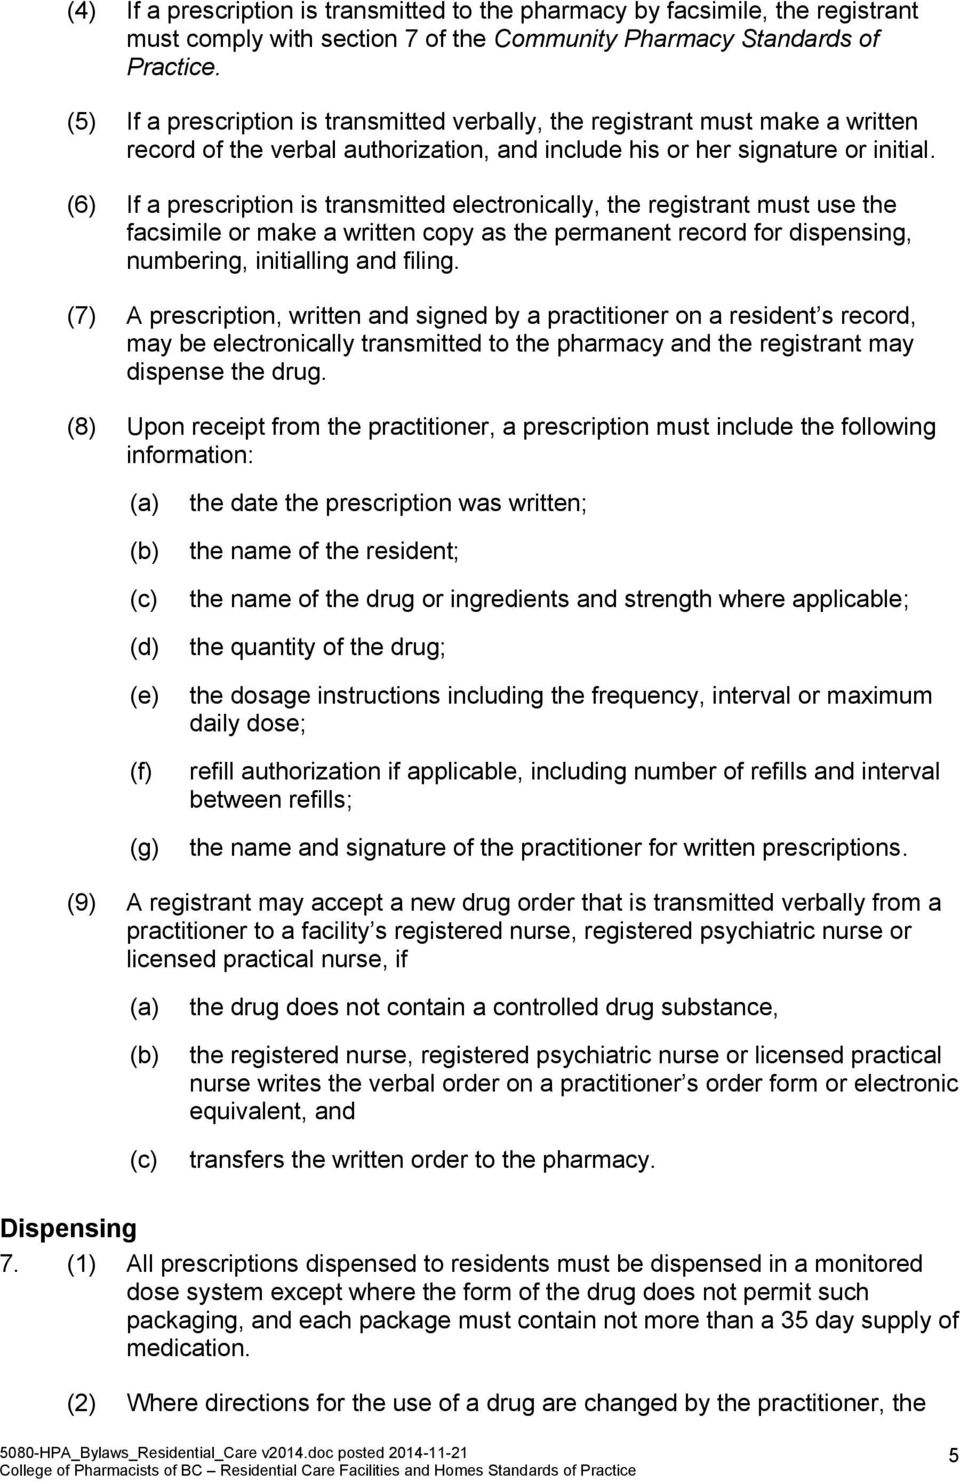 (6) If a prescription is transmitted electronically, the registrant must use the facsimile or make a written copy as the permanent record for dispensing, numbering, initialling and filing.